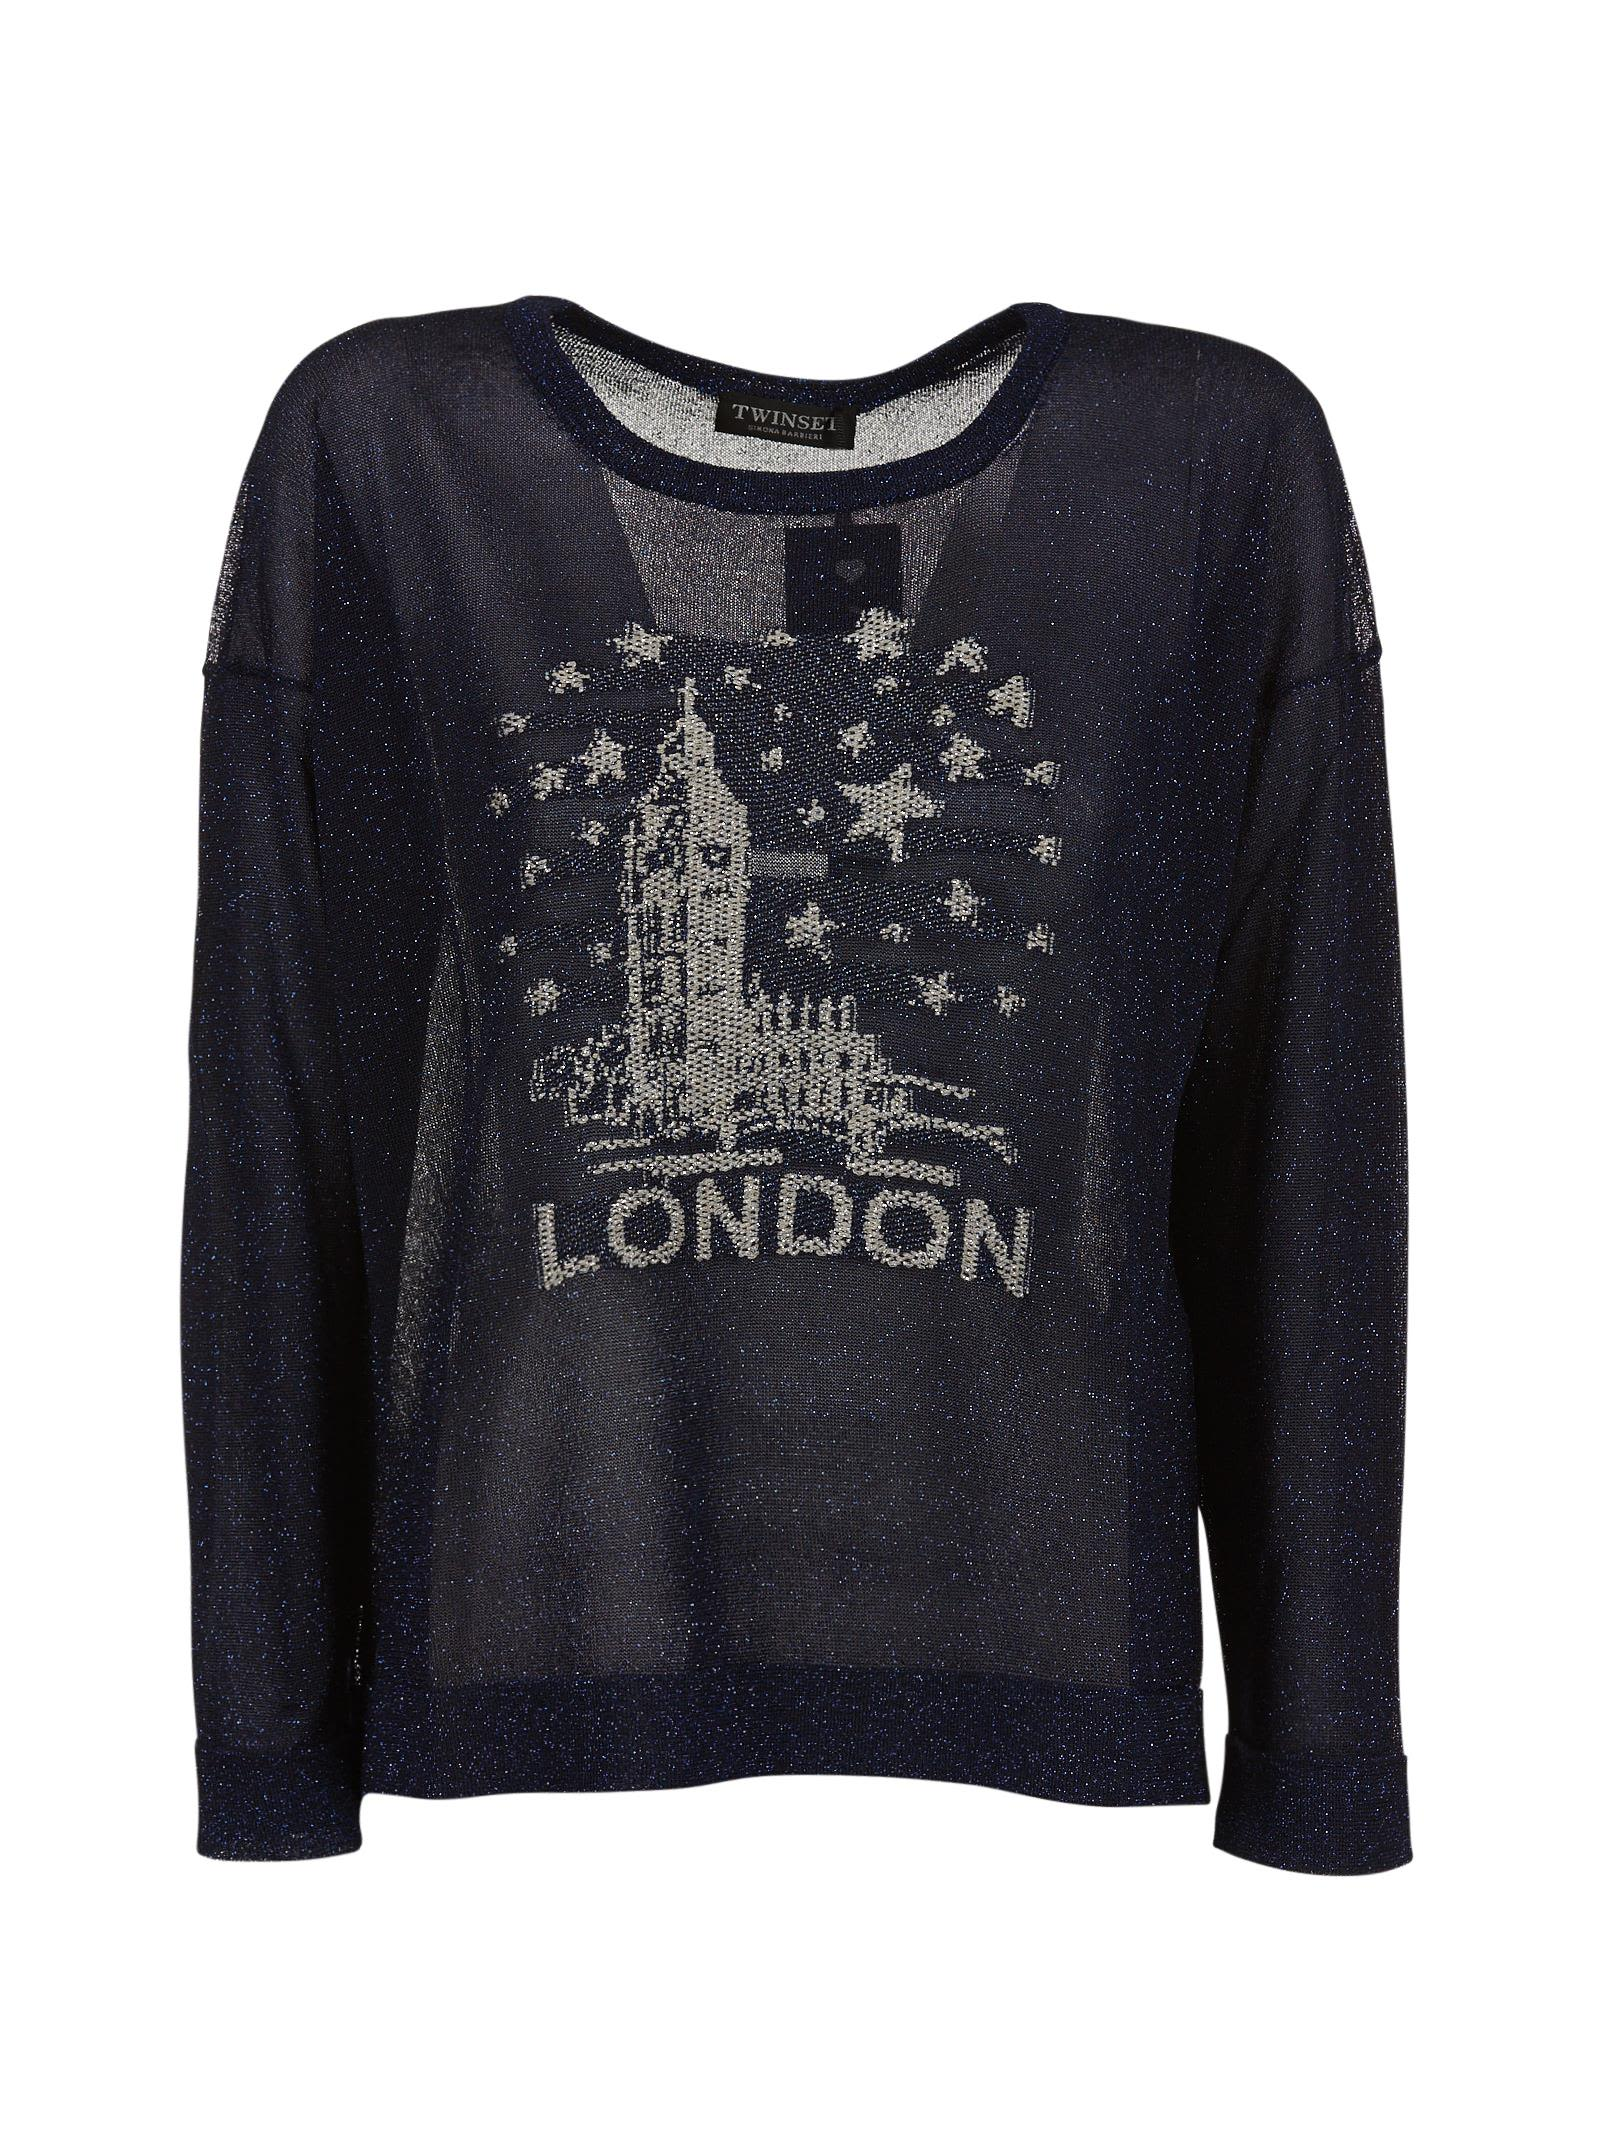 Twinset London Embroidered Sweater